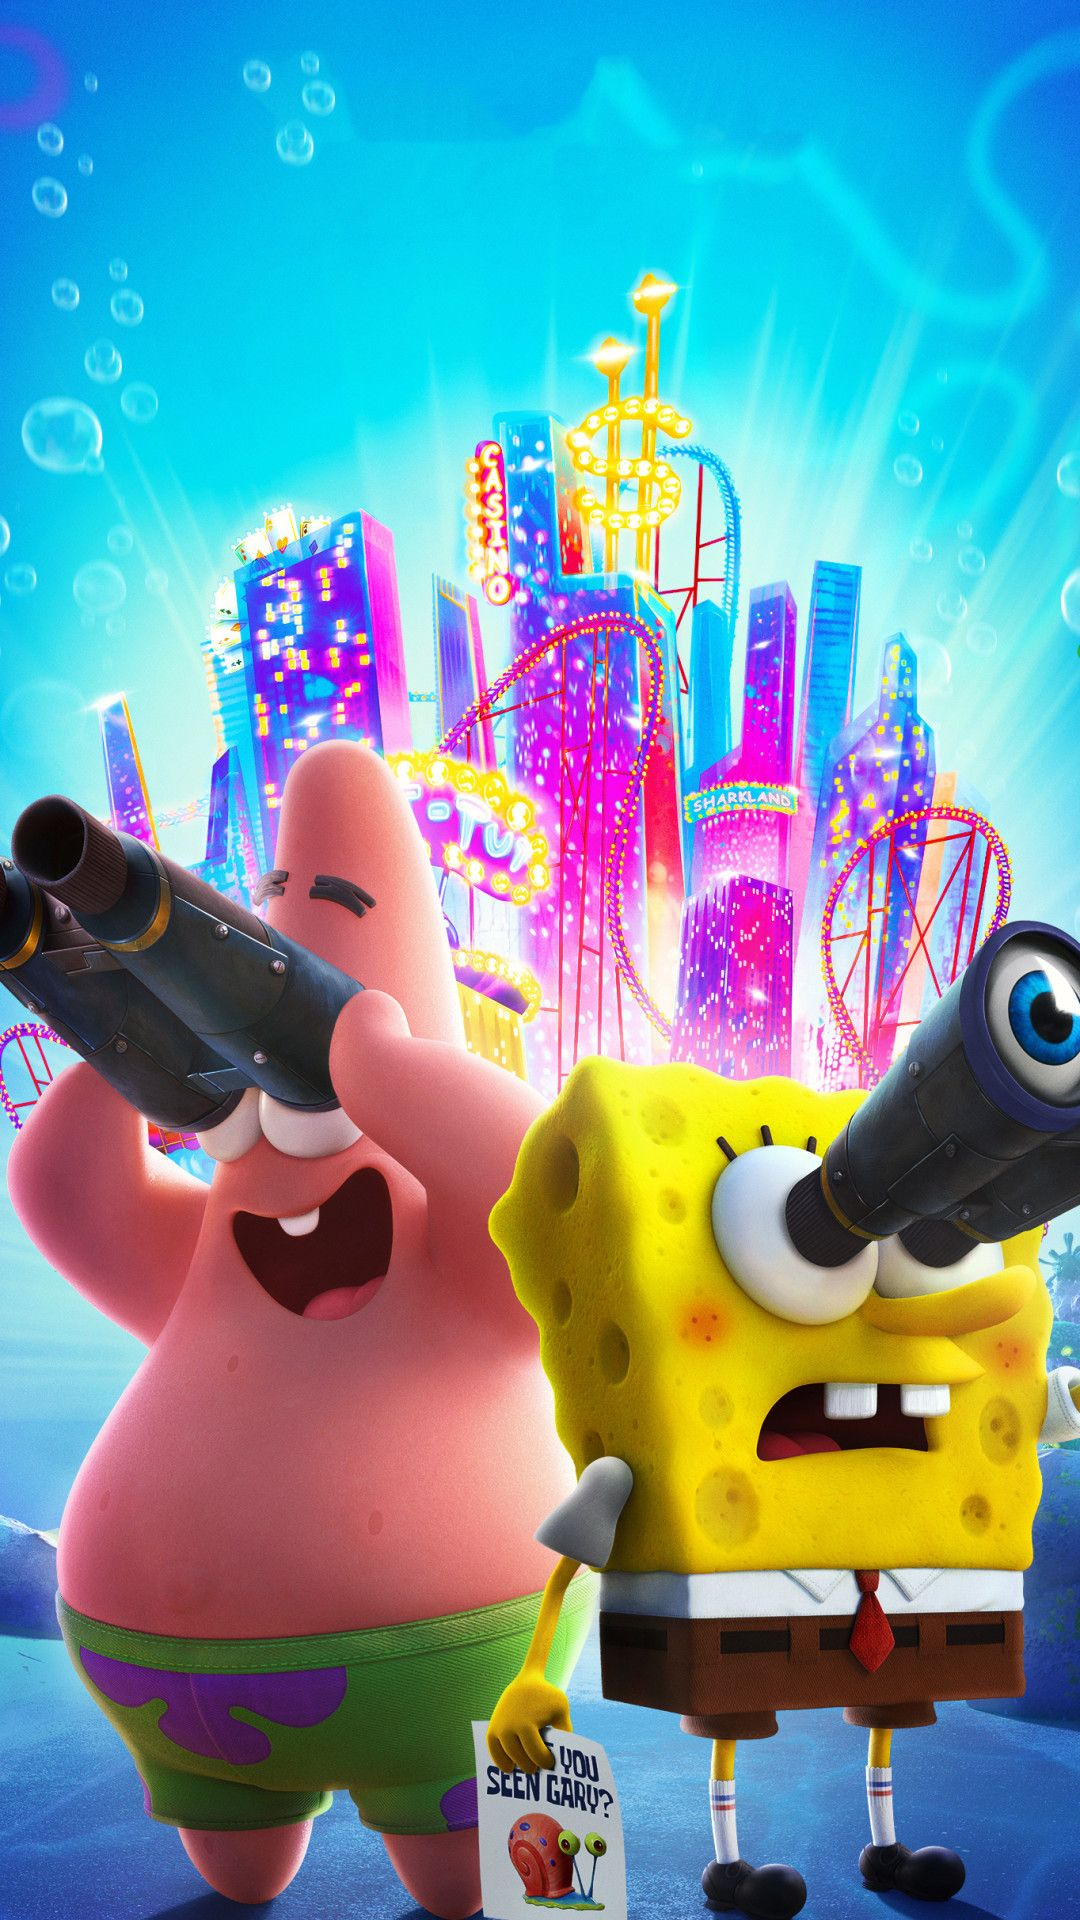 The Spongebob Movie Sponge On The Run 2020 Mobile Wallpaper Iphone Android Samsung Pixel In 2020 Spongebob Wallpaper Spongebob Iphone Wallpaper Mobile Wallpaper